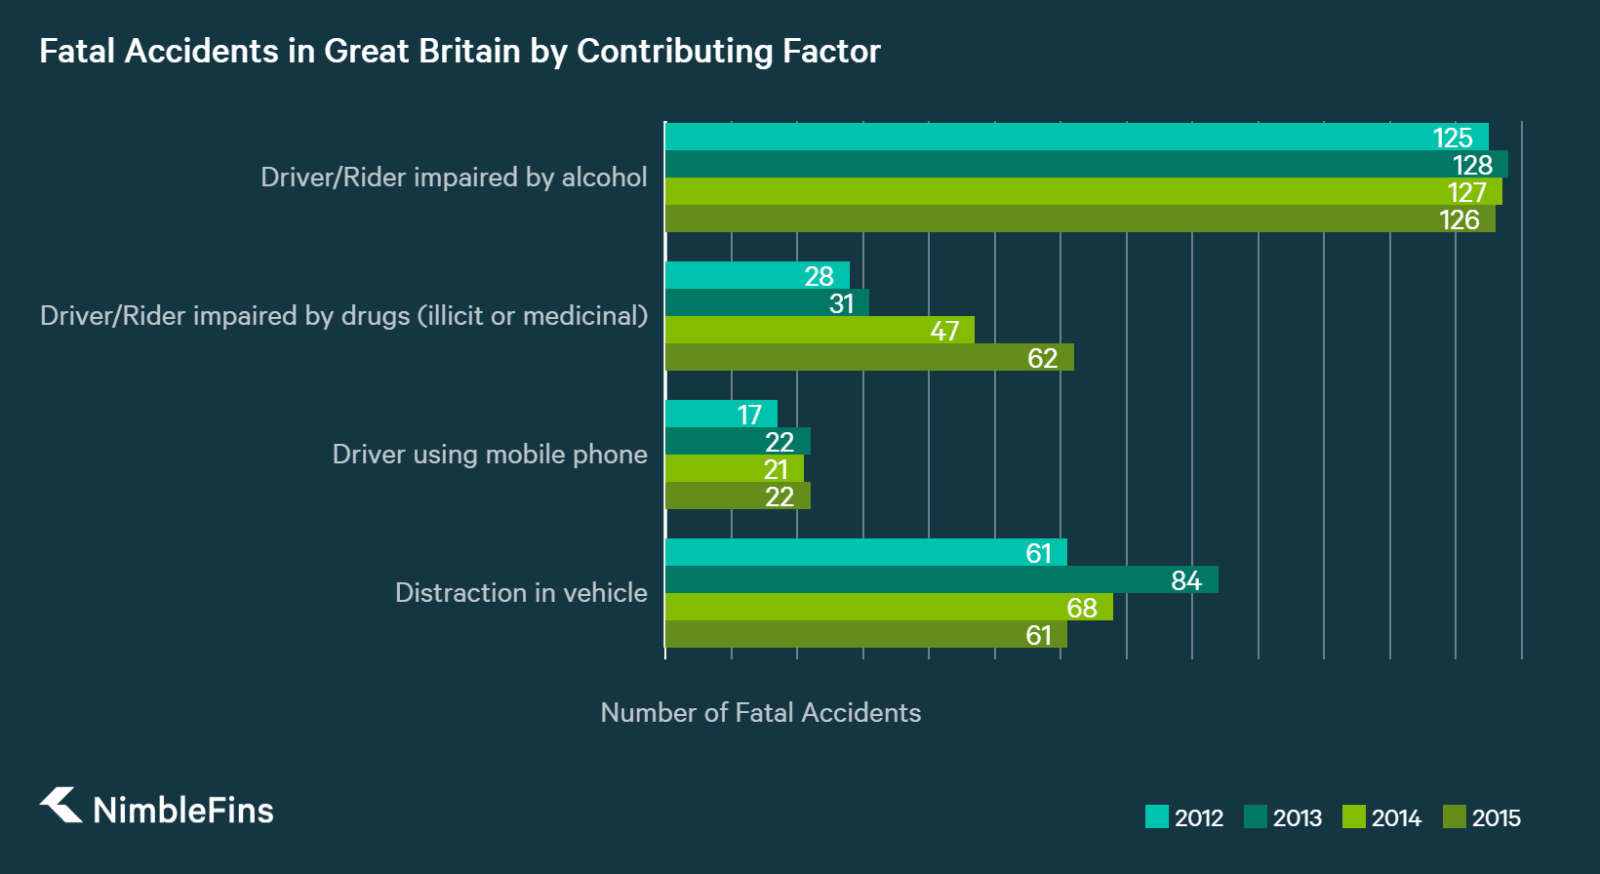 Chart showing the number of fatalities in Great Britain attributed to Drink, Drugs, and Mobile Phones